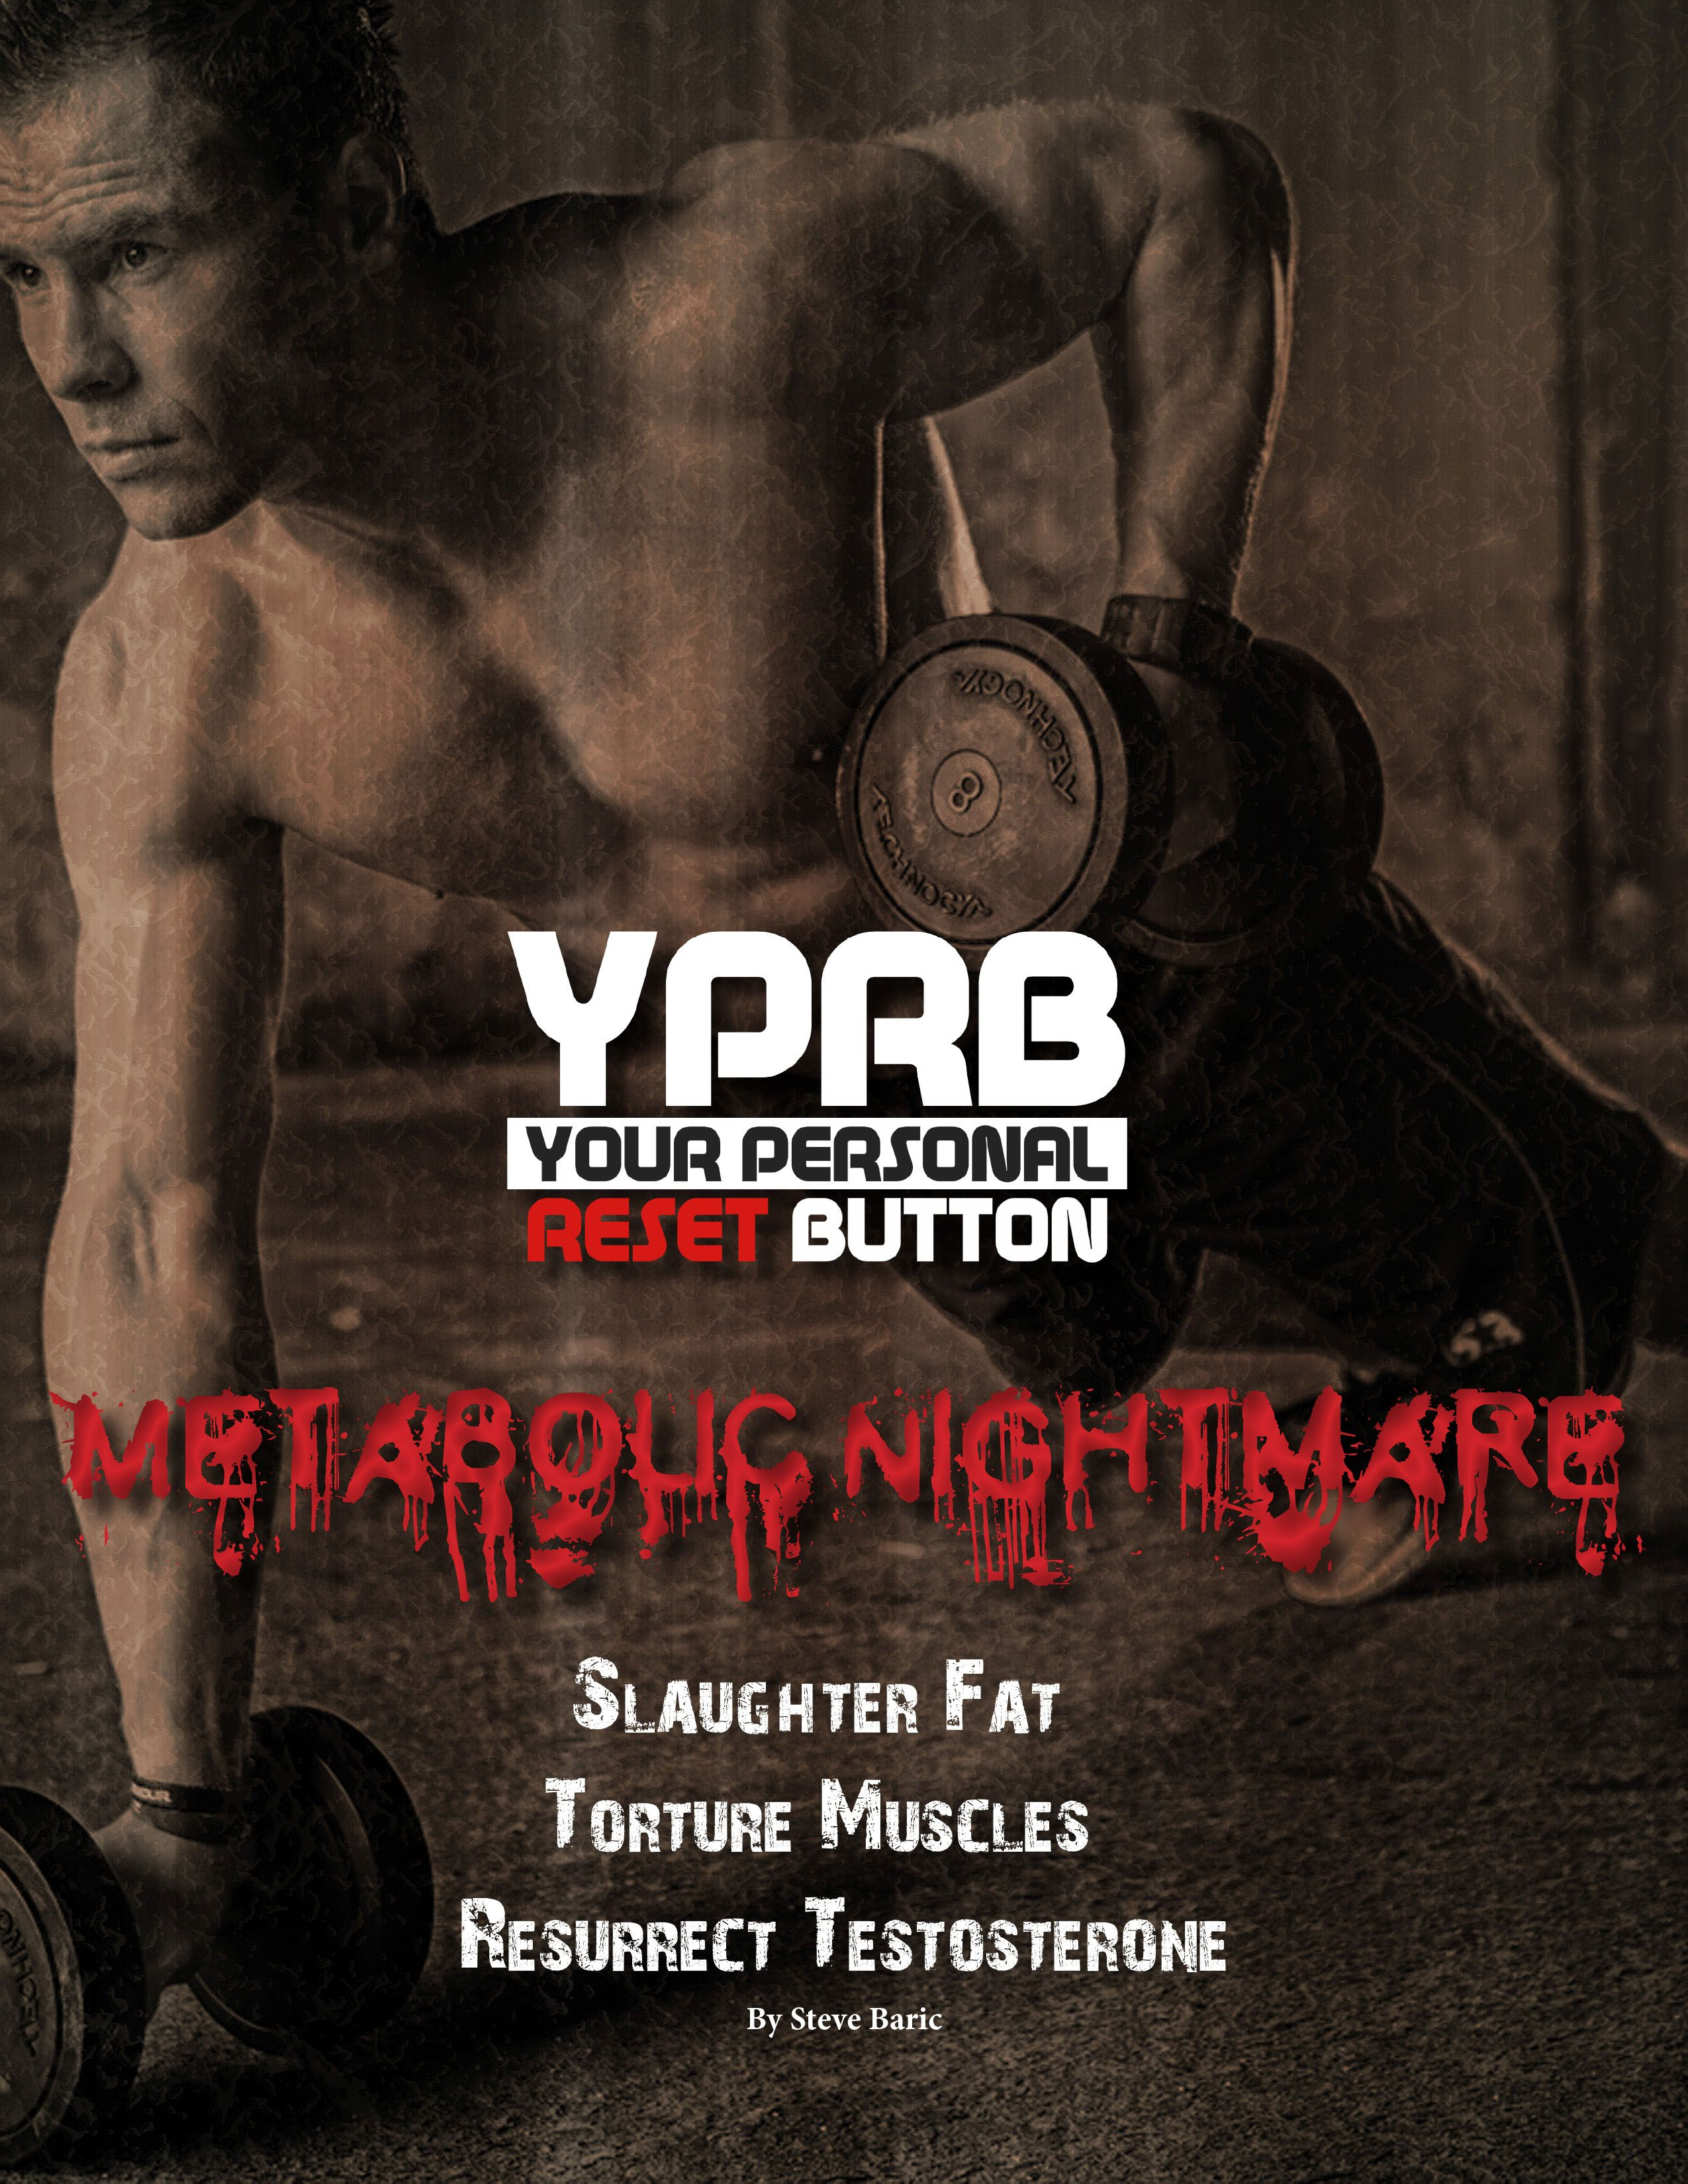 This is the YPRB Metabolic Nightmare. We've taken the ...